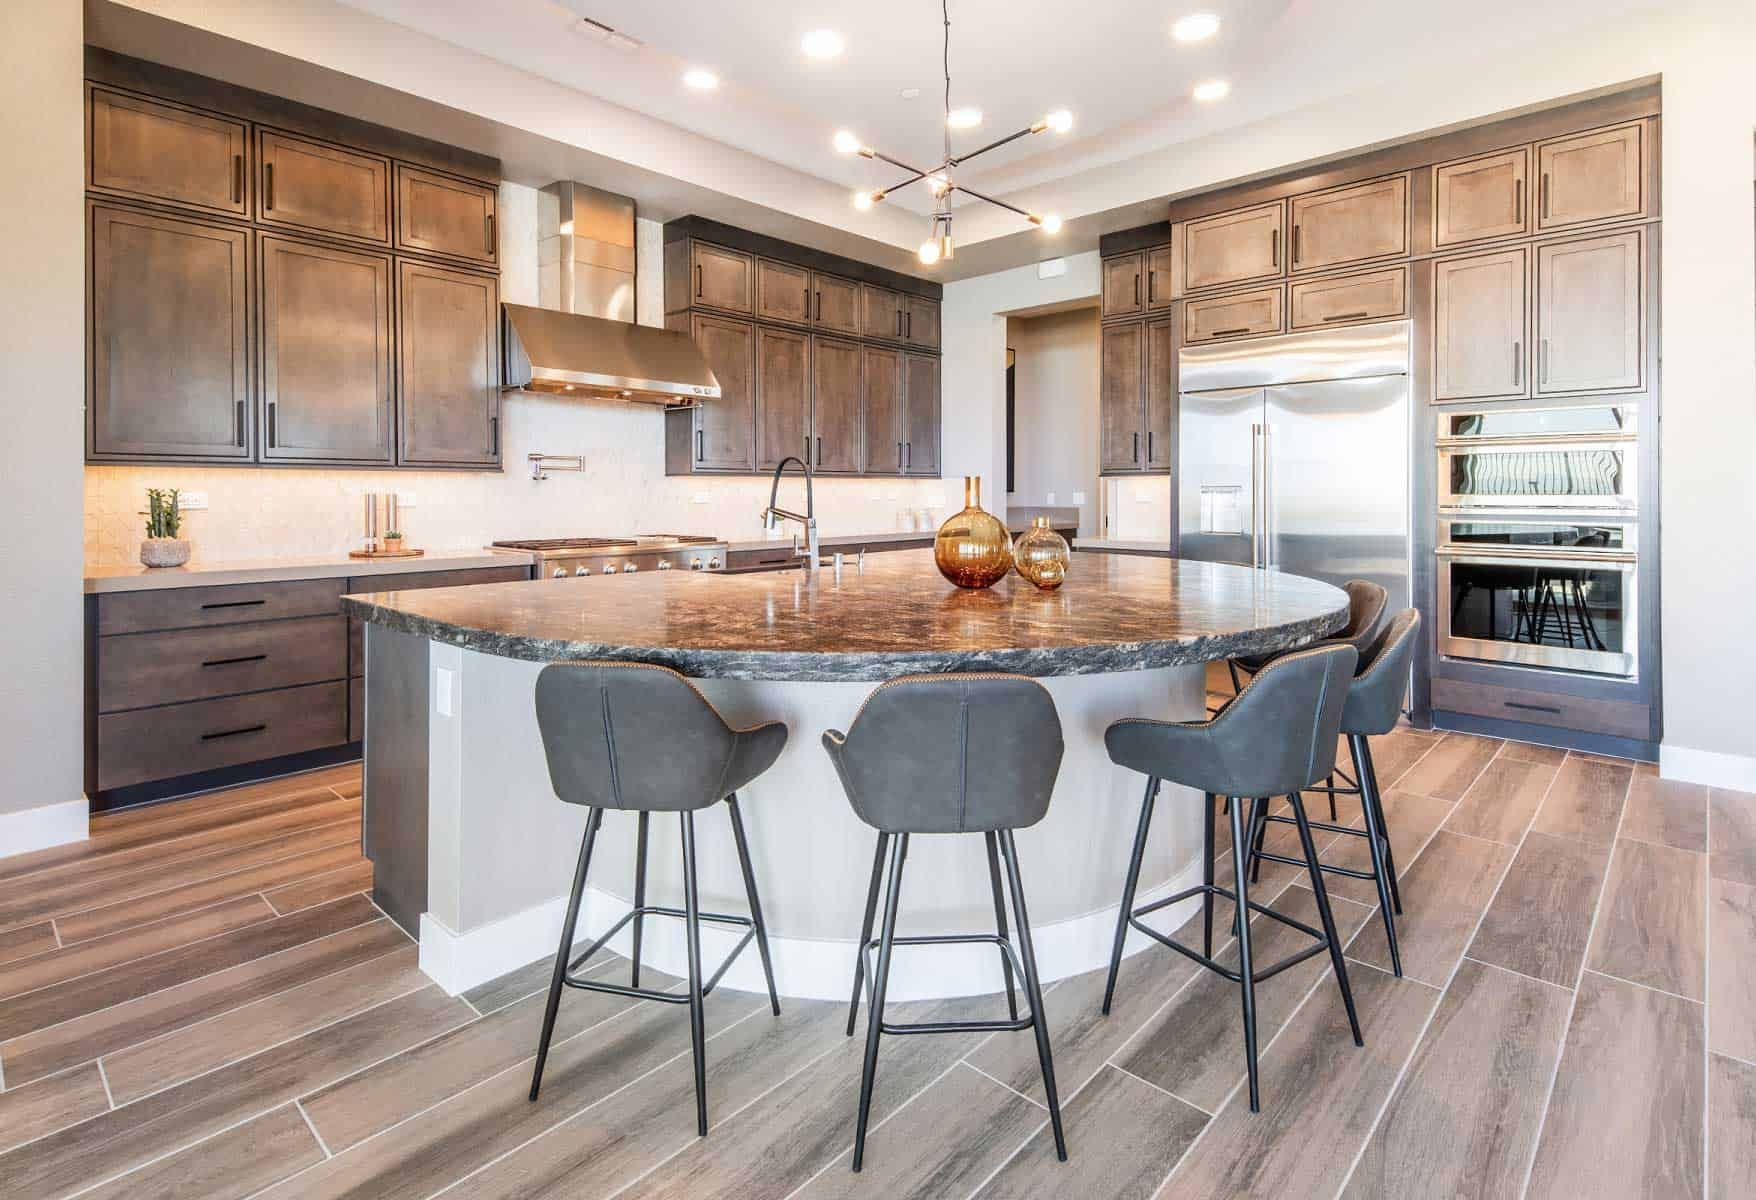 Kitchen featured in the Plan 5 By Tri Pointe Homes in Las Vegas, NV